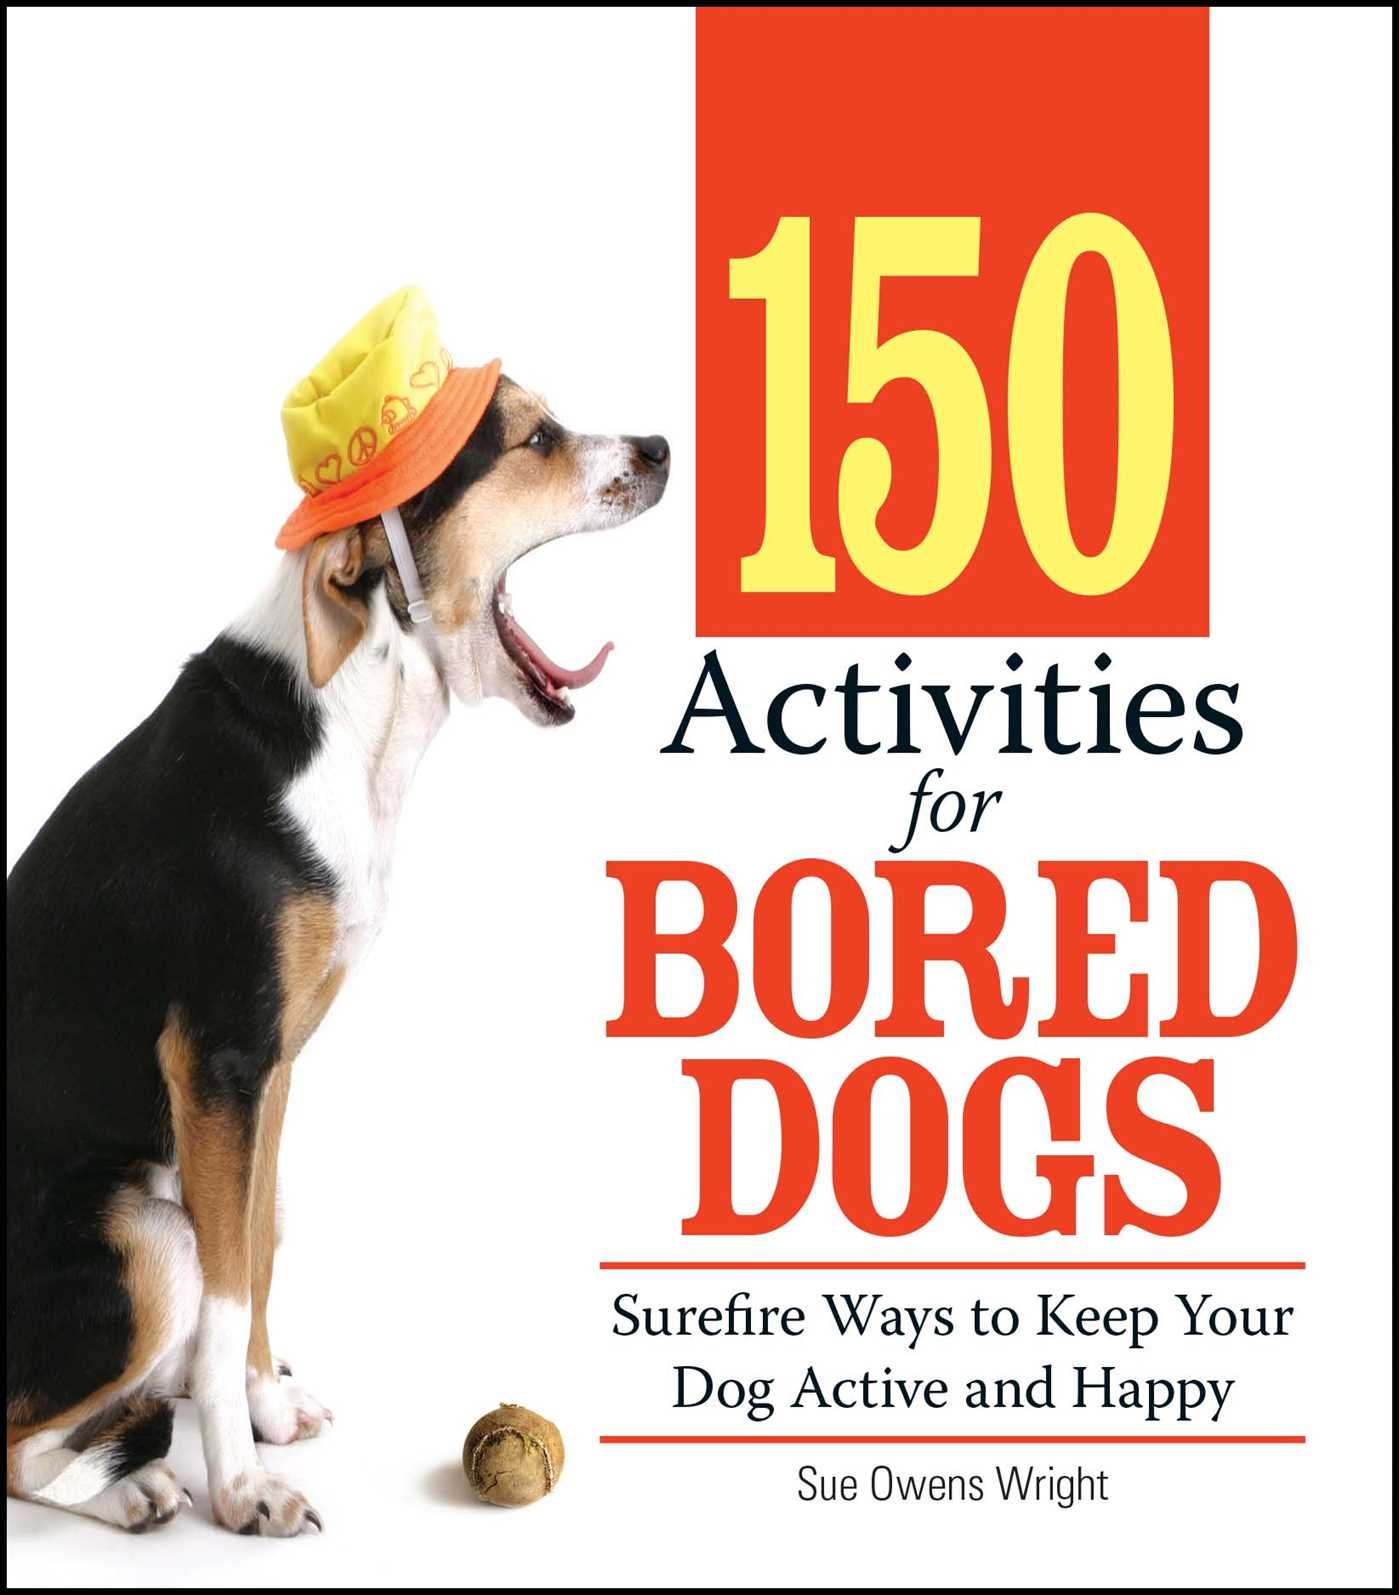 150 Activities For Bored Dogs Surefire Ways to Keep Your Dog